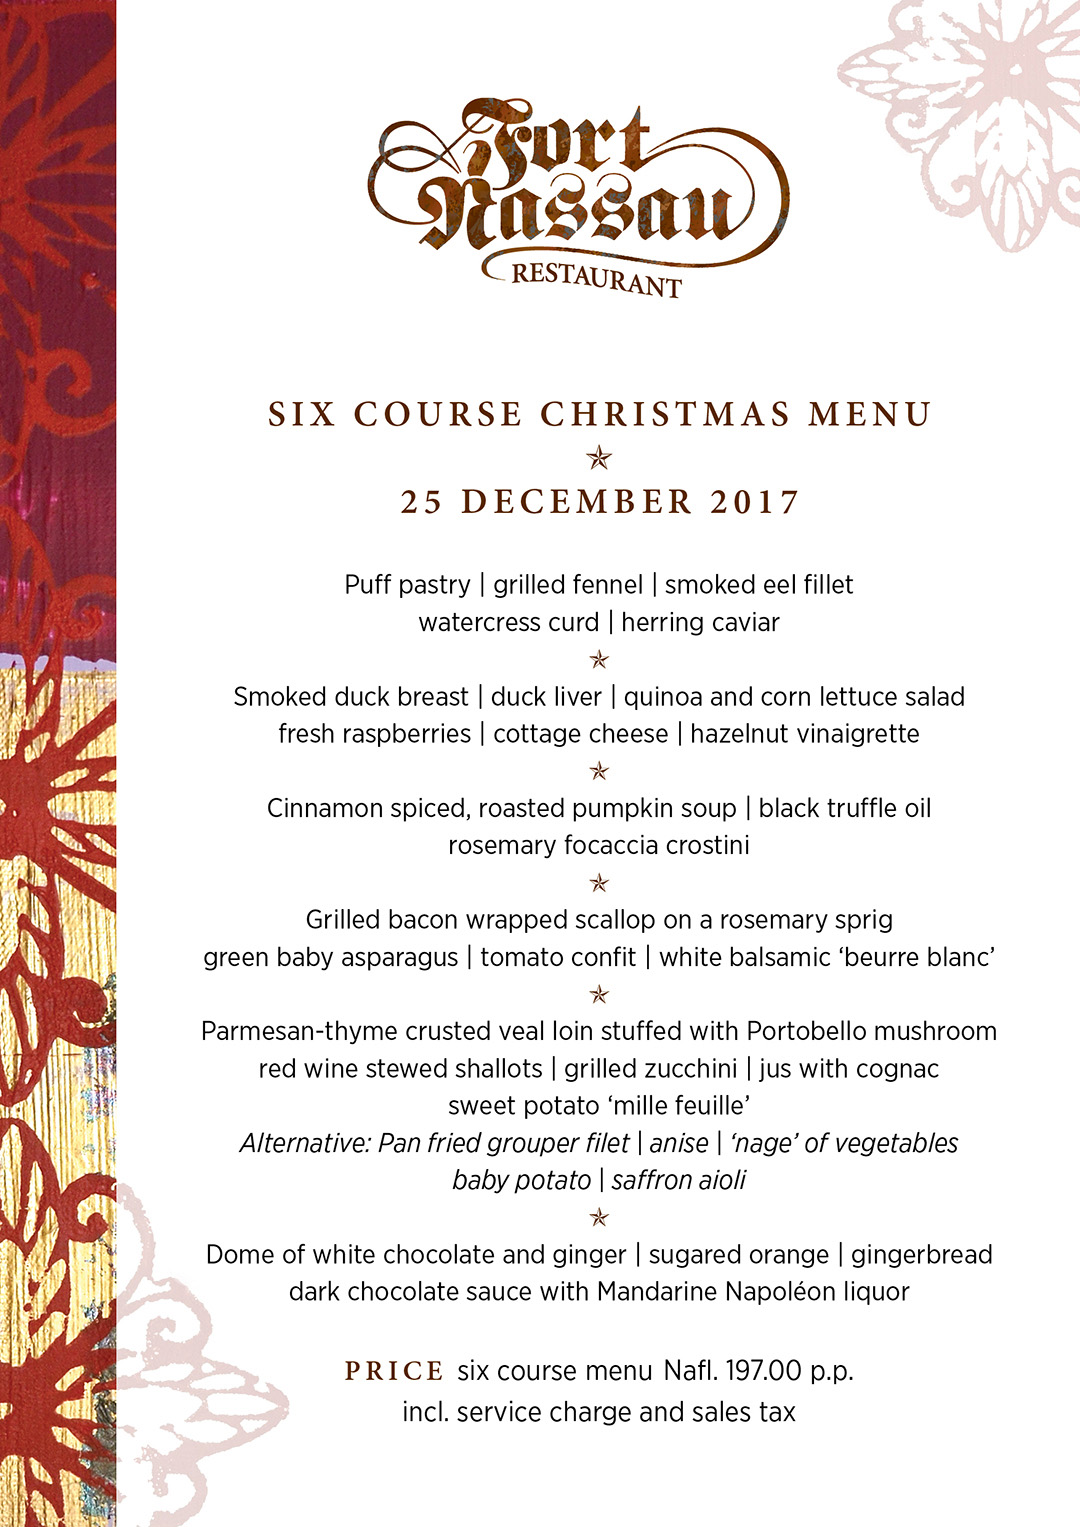 Six Course Christmas menu